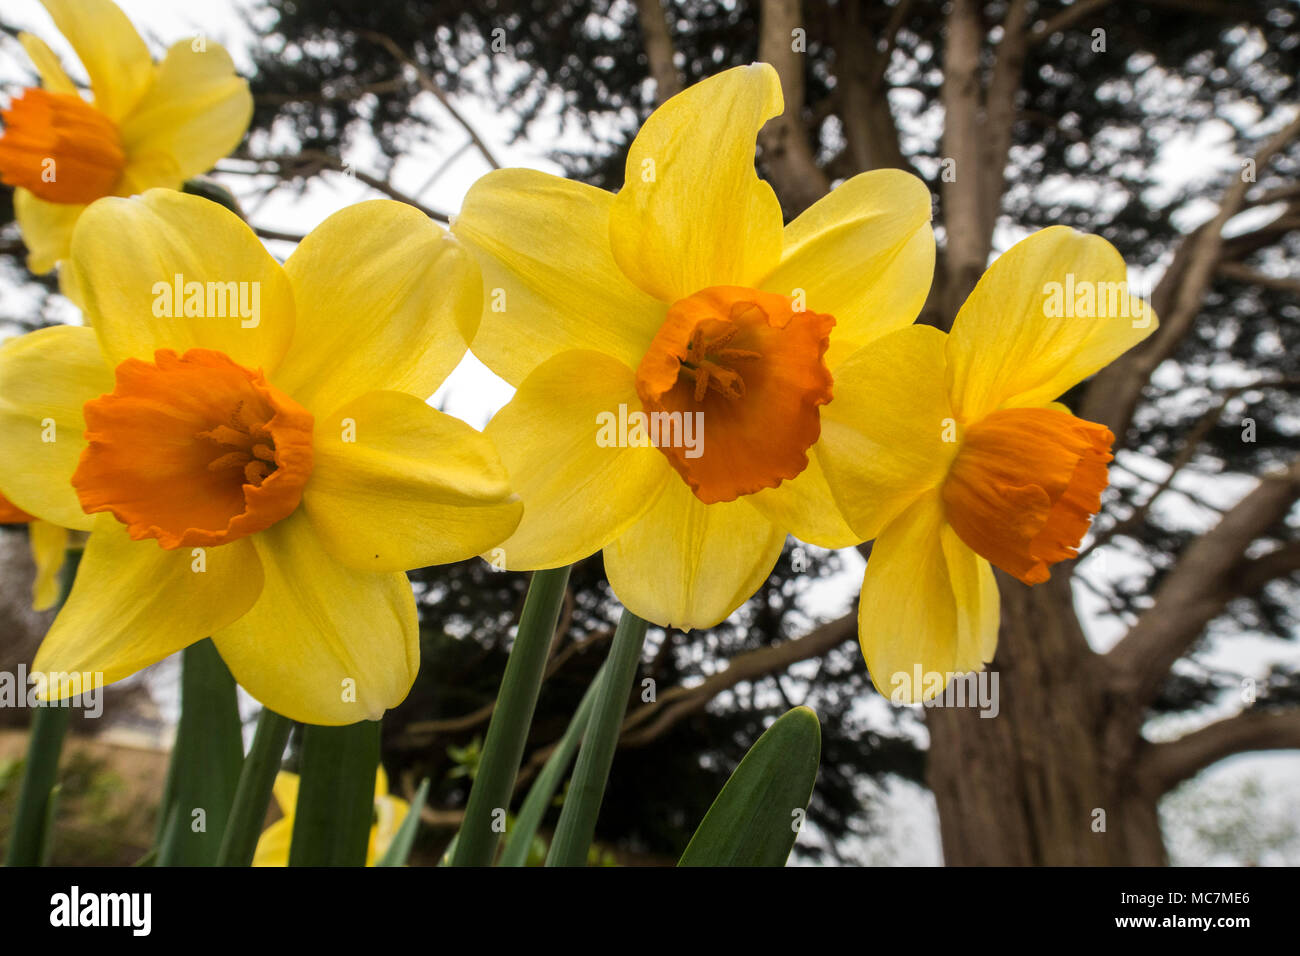 Trumpet Daffodil Hero Narcissus Yellow With Orange Centre Spring